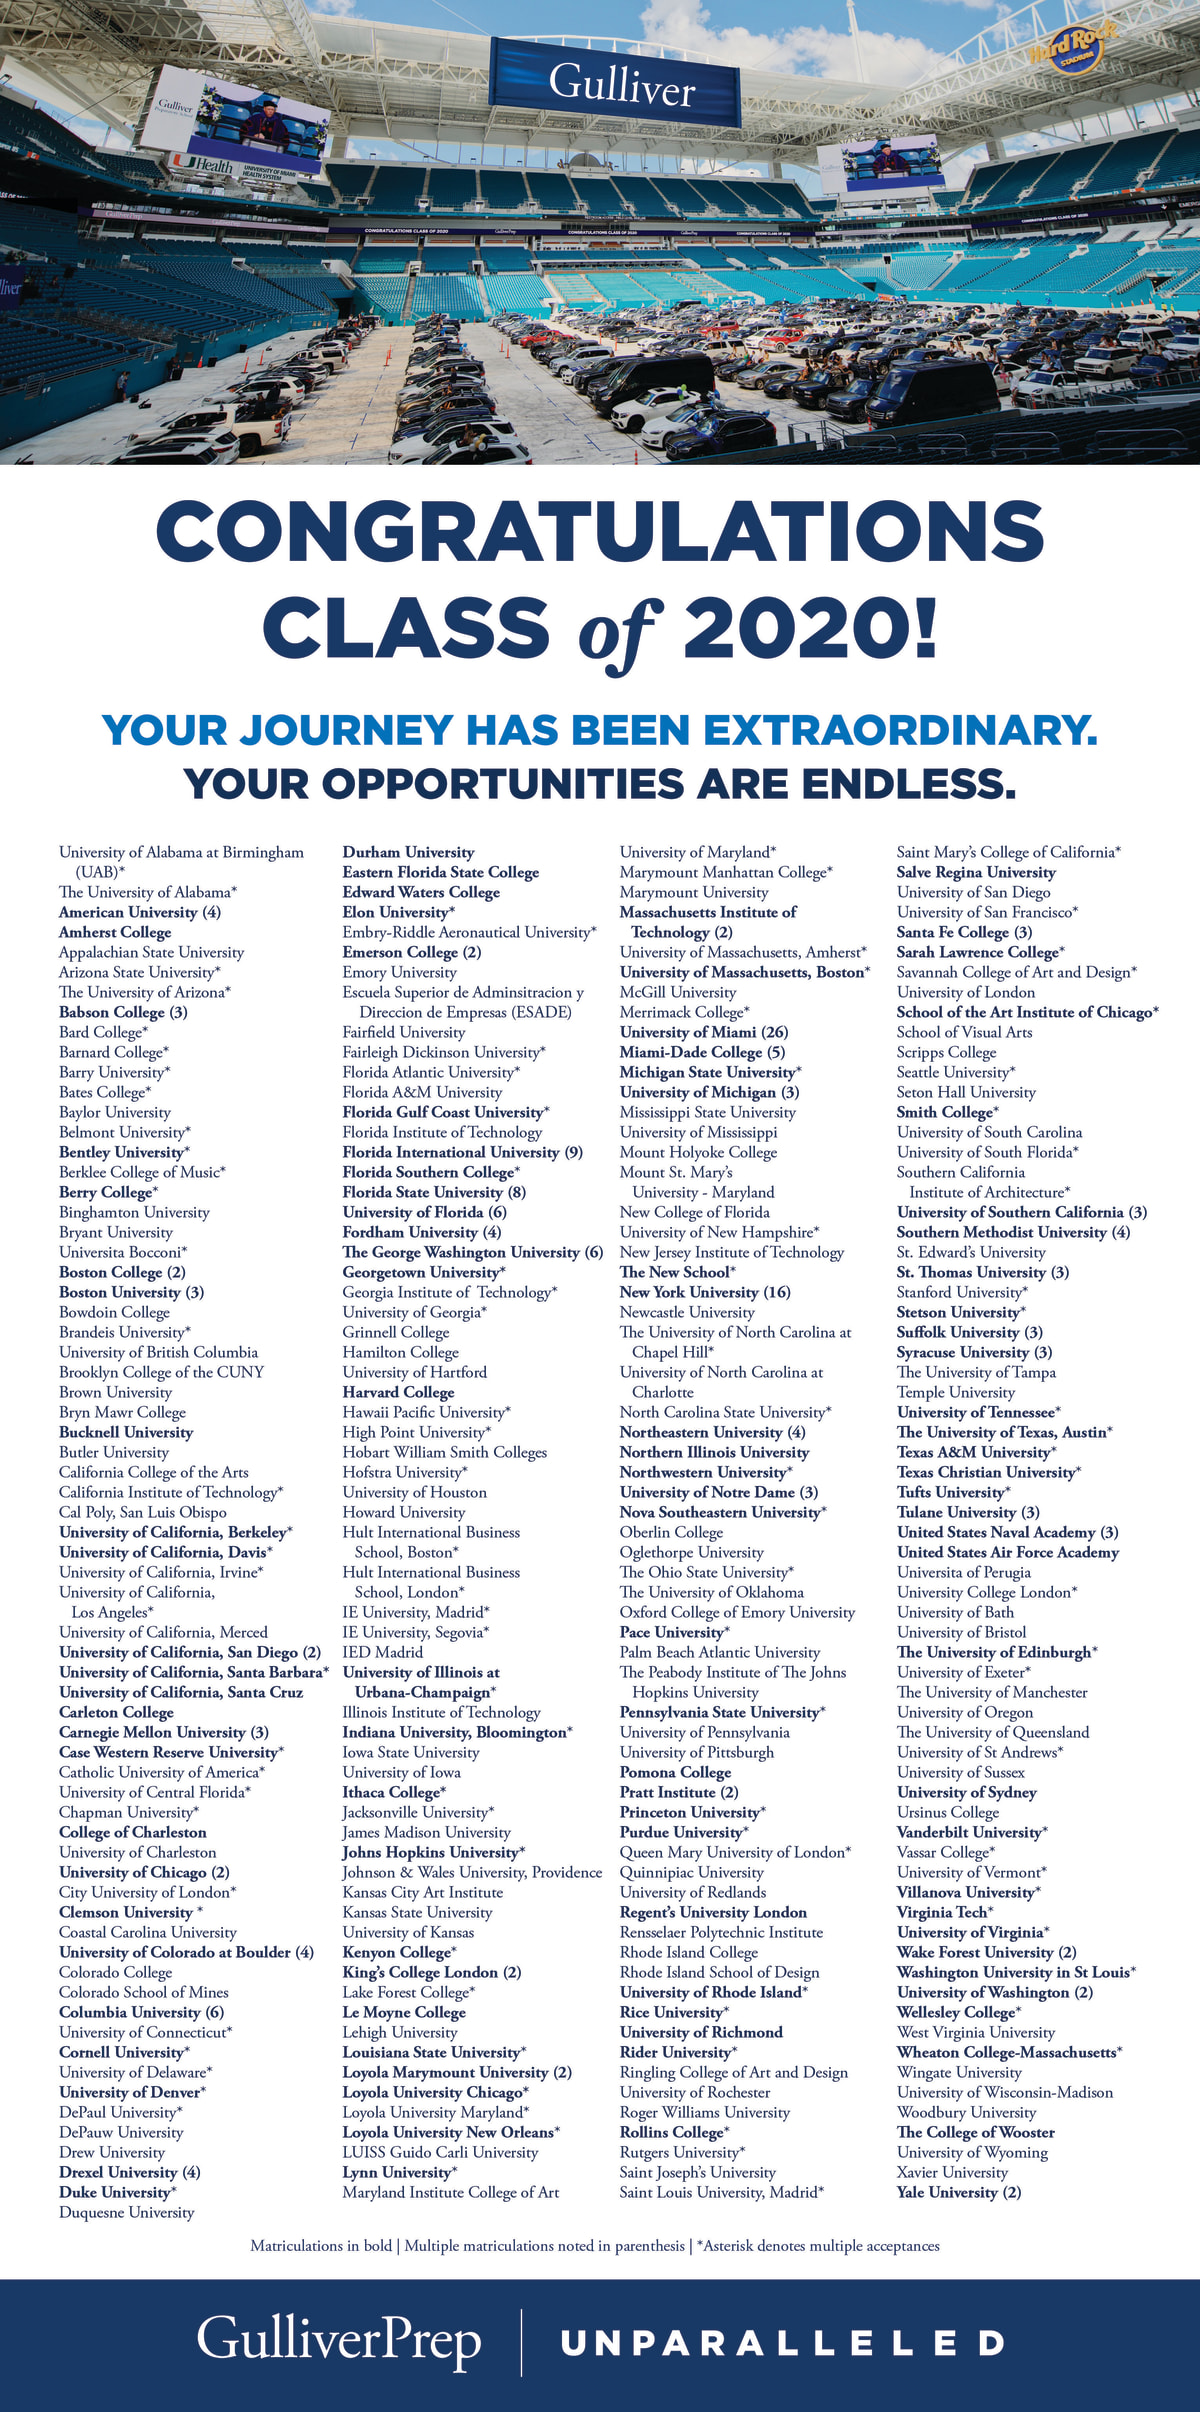 Gulliver Prep Class of 2020 graphic with university list